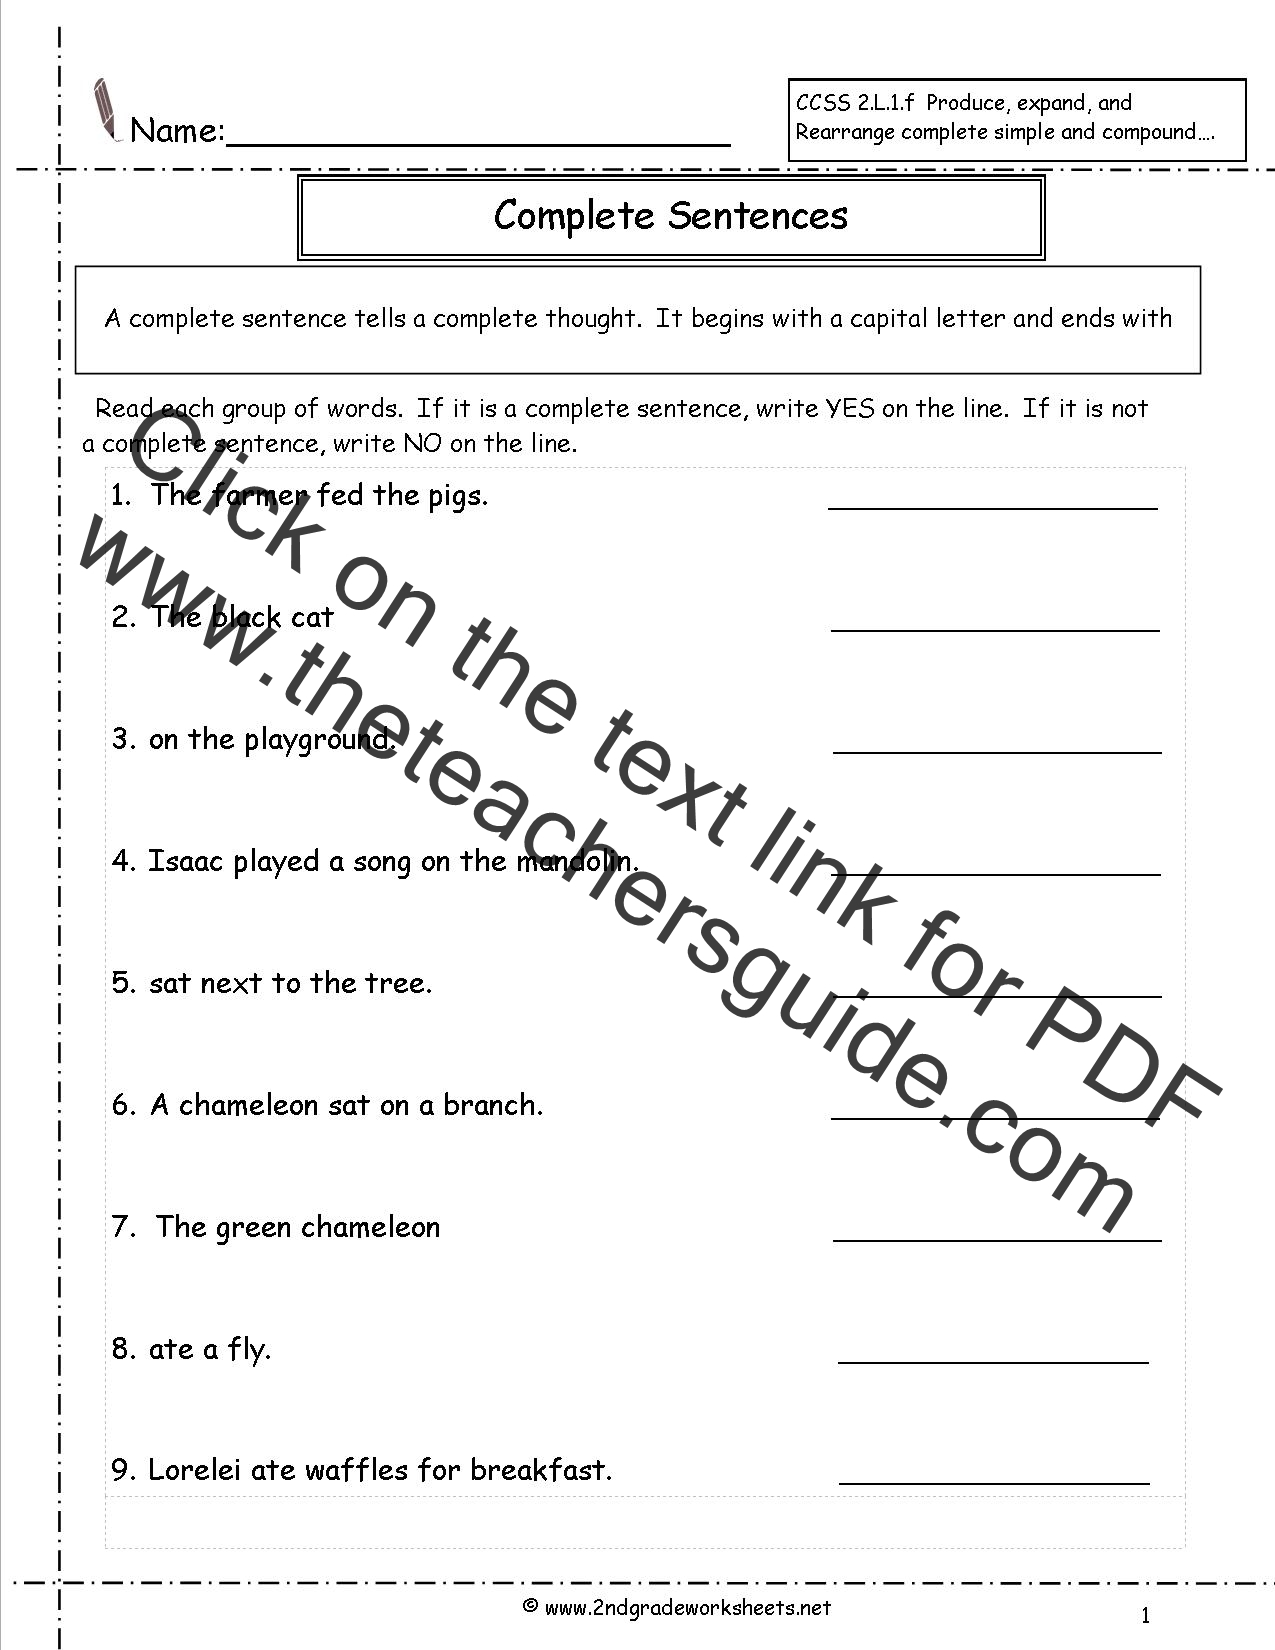 Jumbled Sentences Worksheet Hd Quality